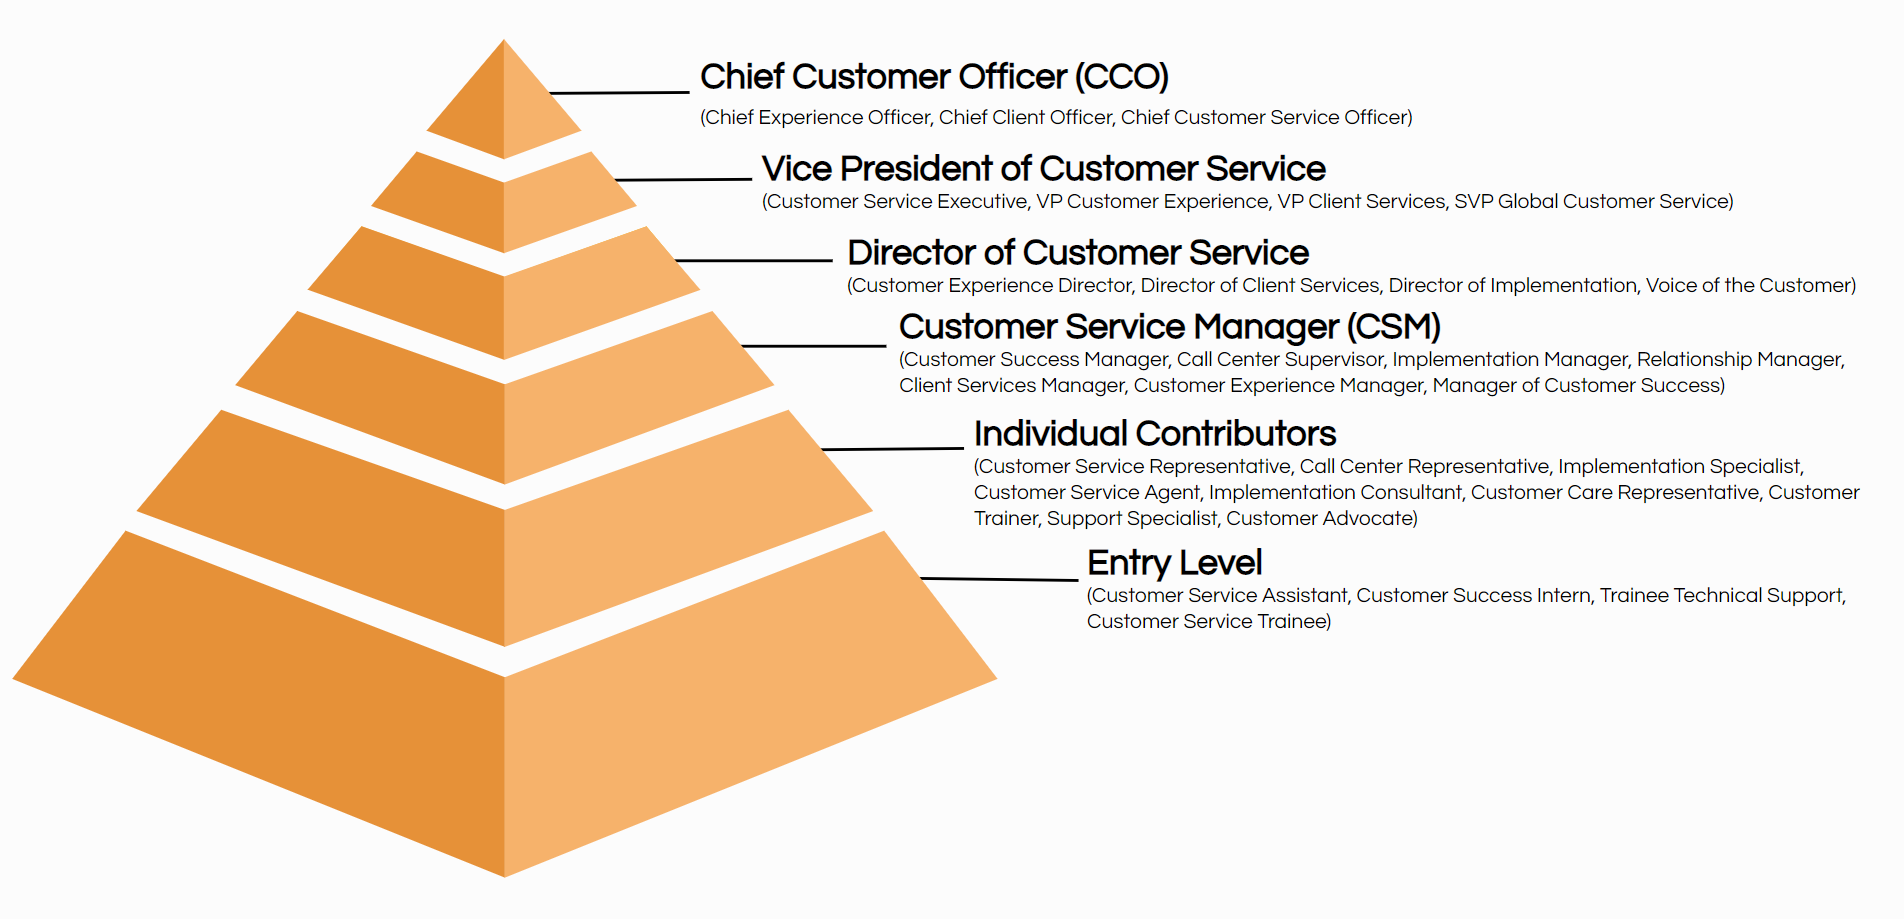 customer service job titles hierarchy